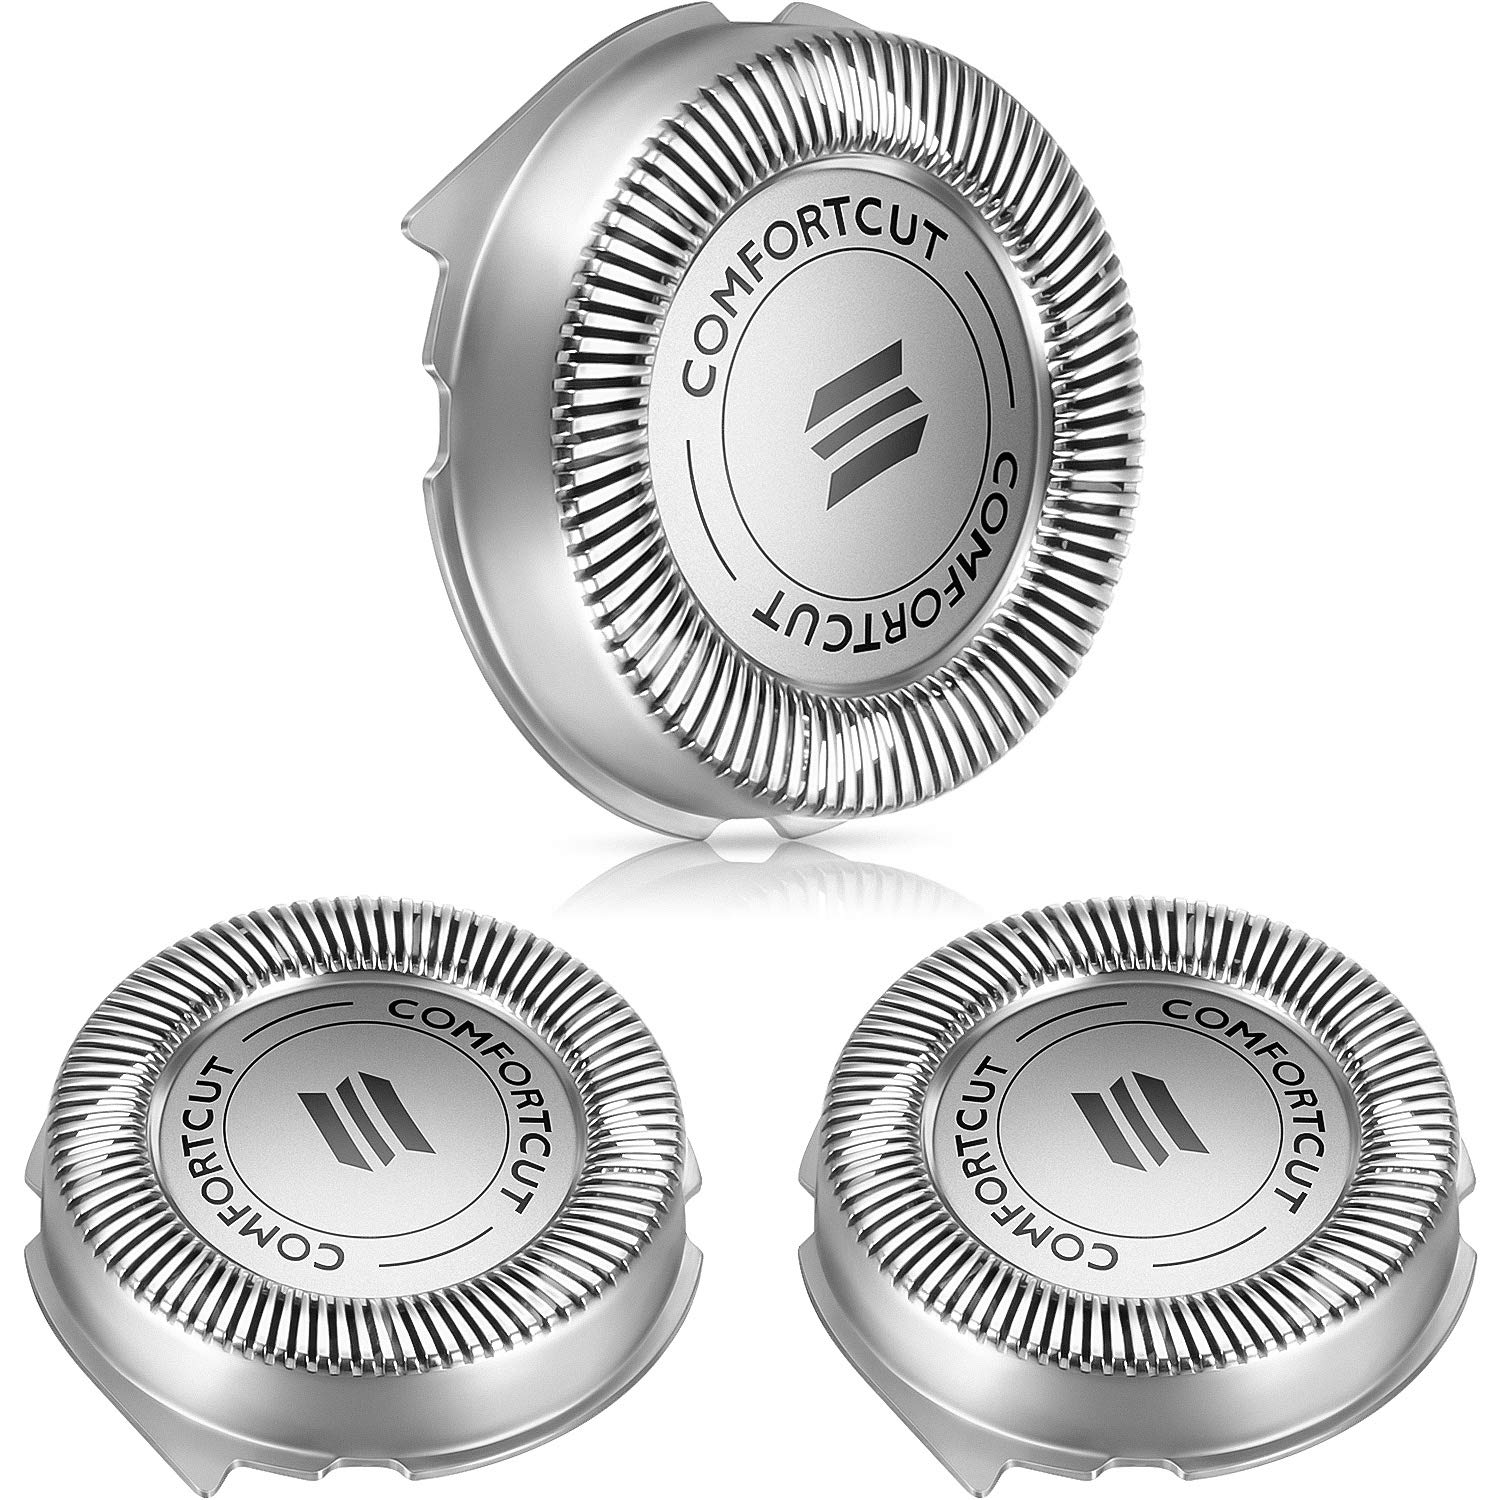 3 Packs SH30, 52 Shavers Replacement Heads Precision Blade Compatible with Series 1000, 2000, 3000 Electric Shavers Models and S738, Pointed and Easy to Cut